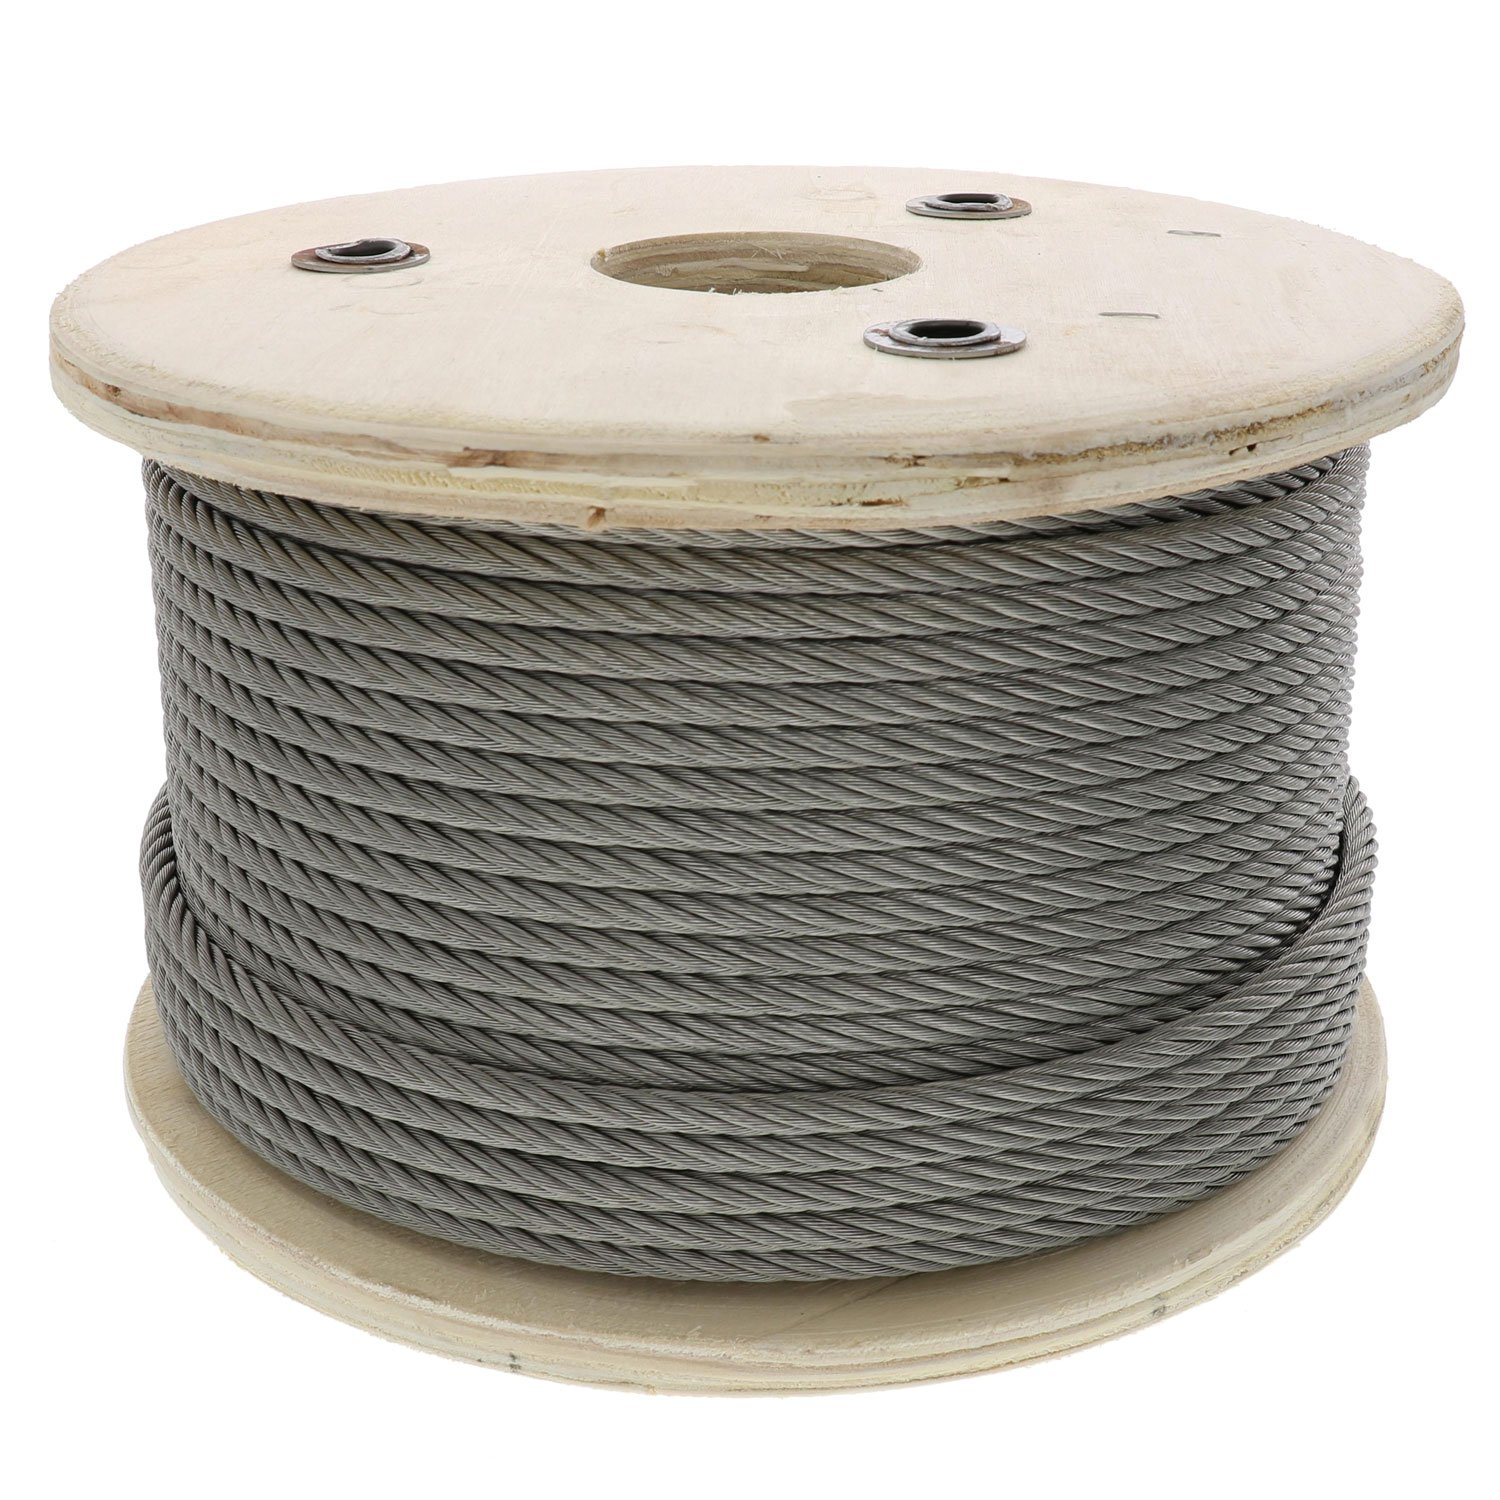 7//32 Coated OD 7x19 Strand Core 2000 lbs Breaking Strength Loos Galvanized Steel Wire Rope Orange 1//8 Bare OD Vinyl Coated 25 Length